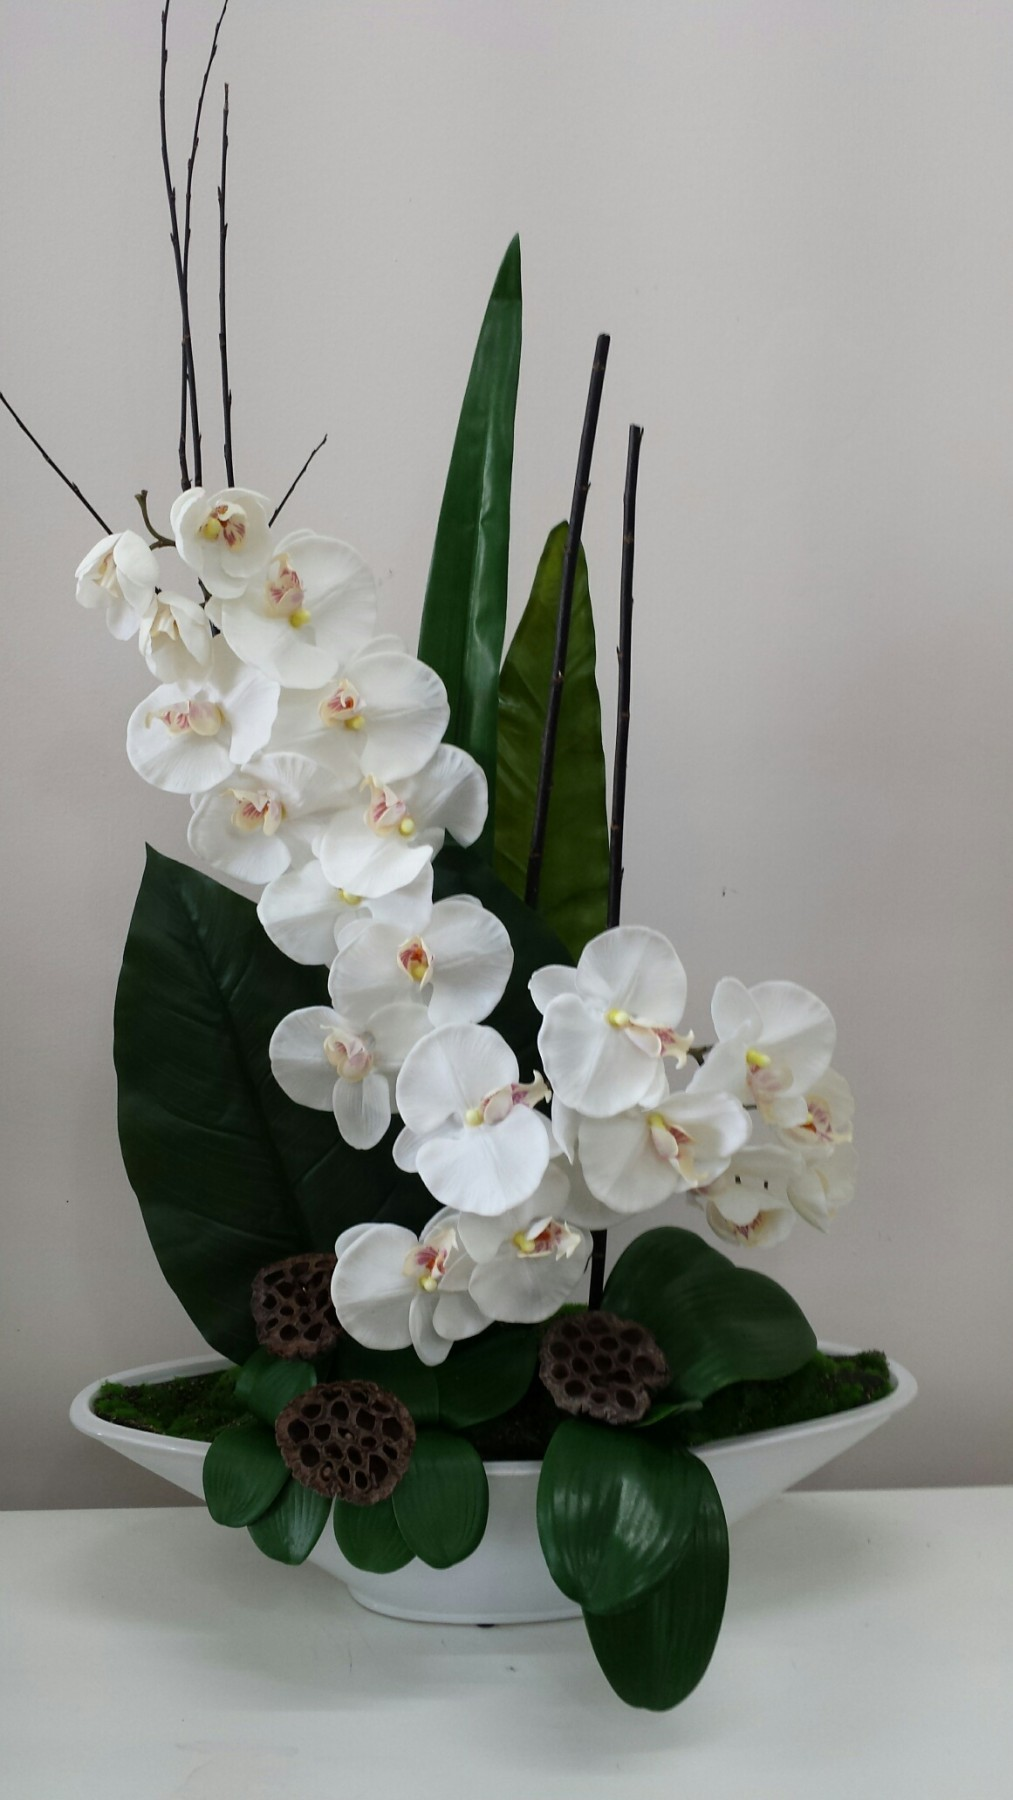 Orchid stems with lotus pods in a ceramic boat shaped pot